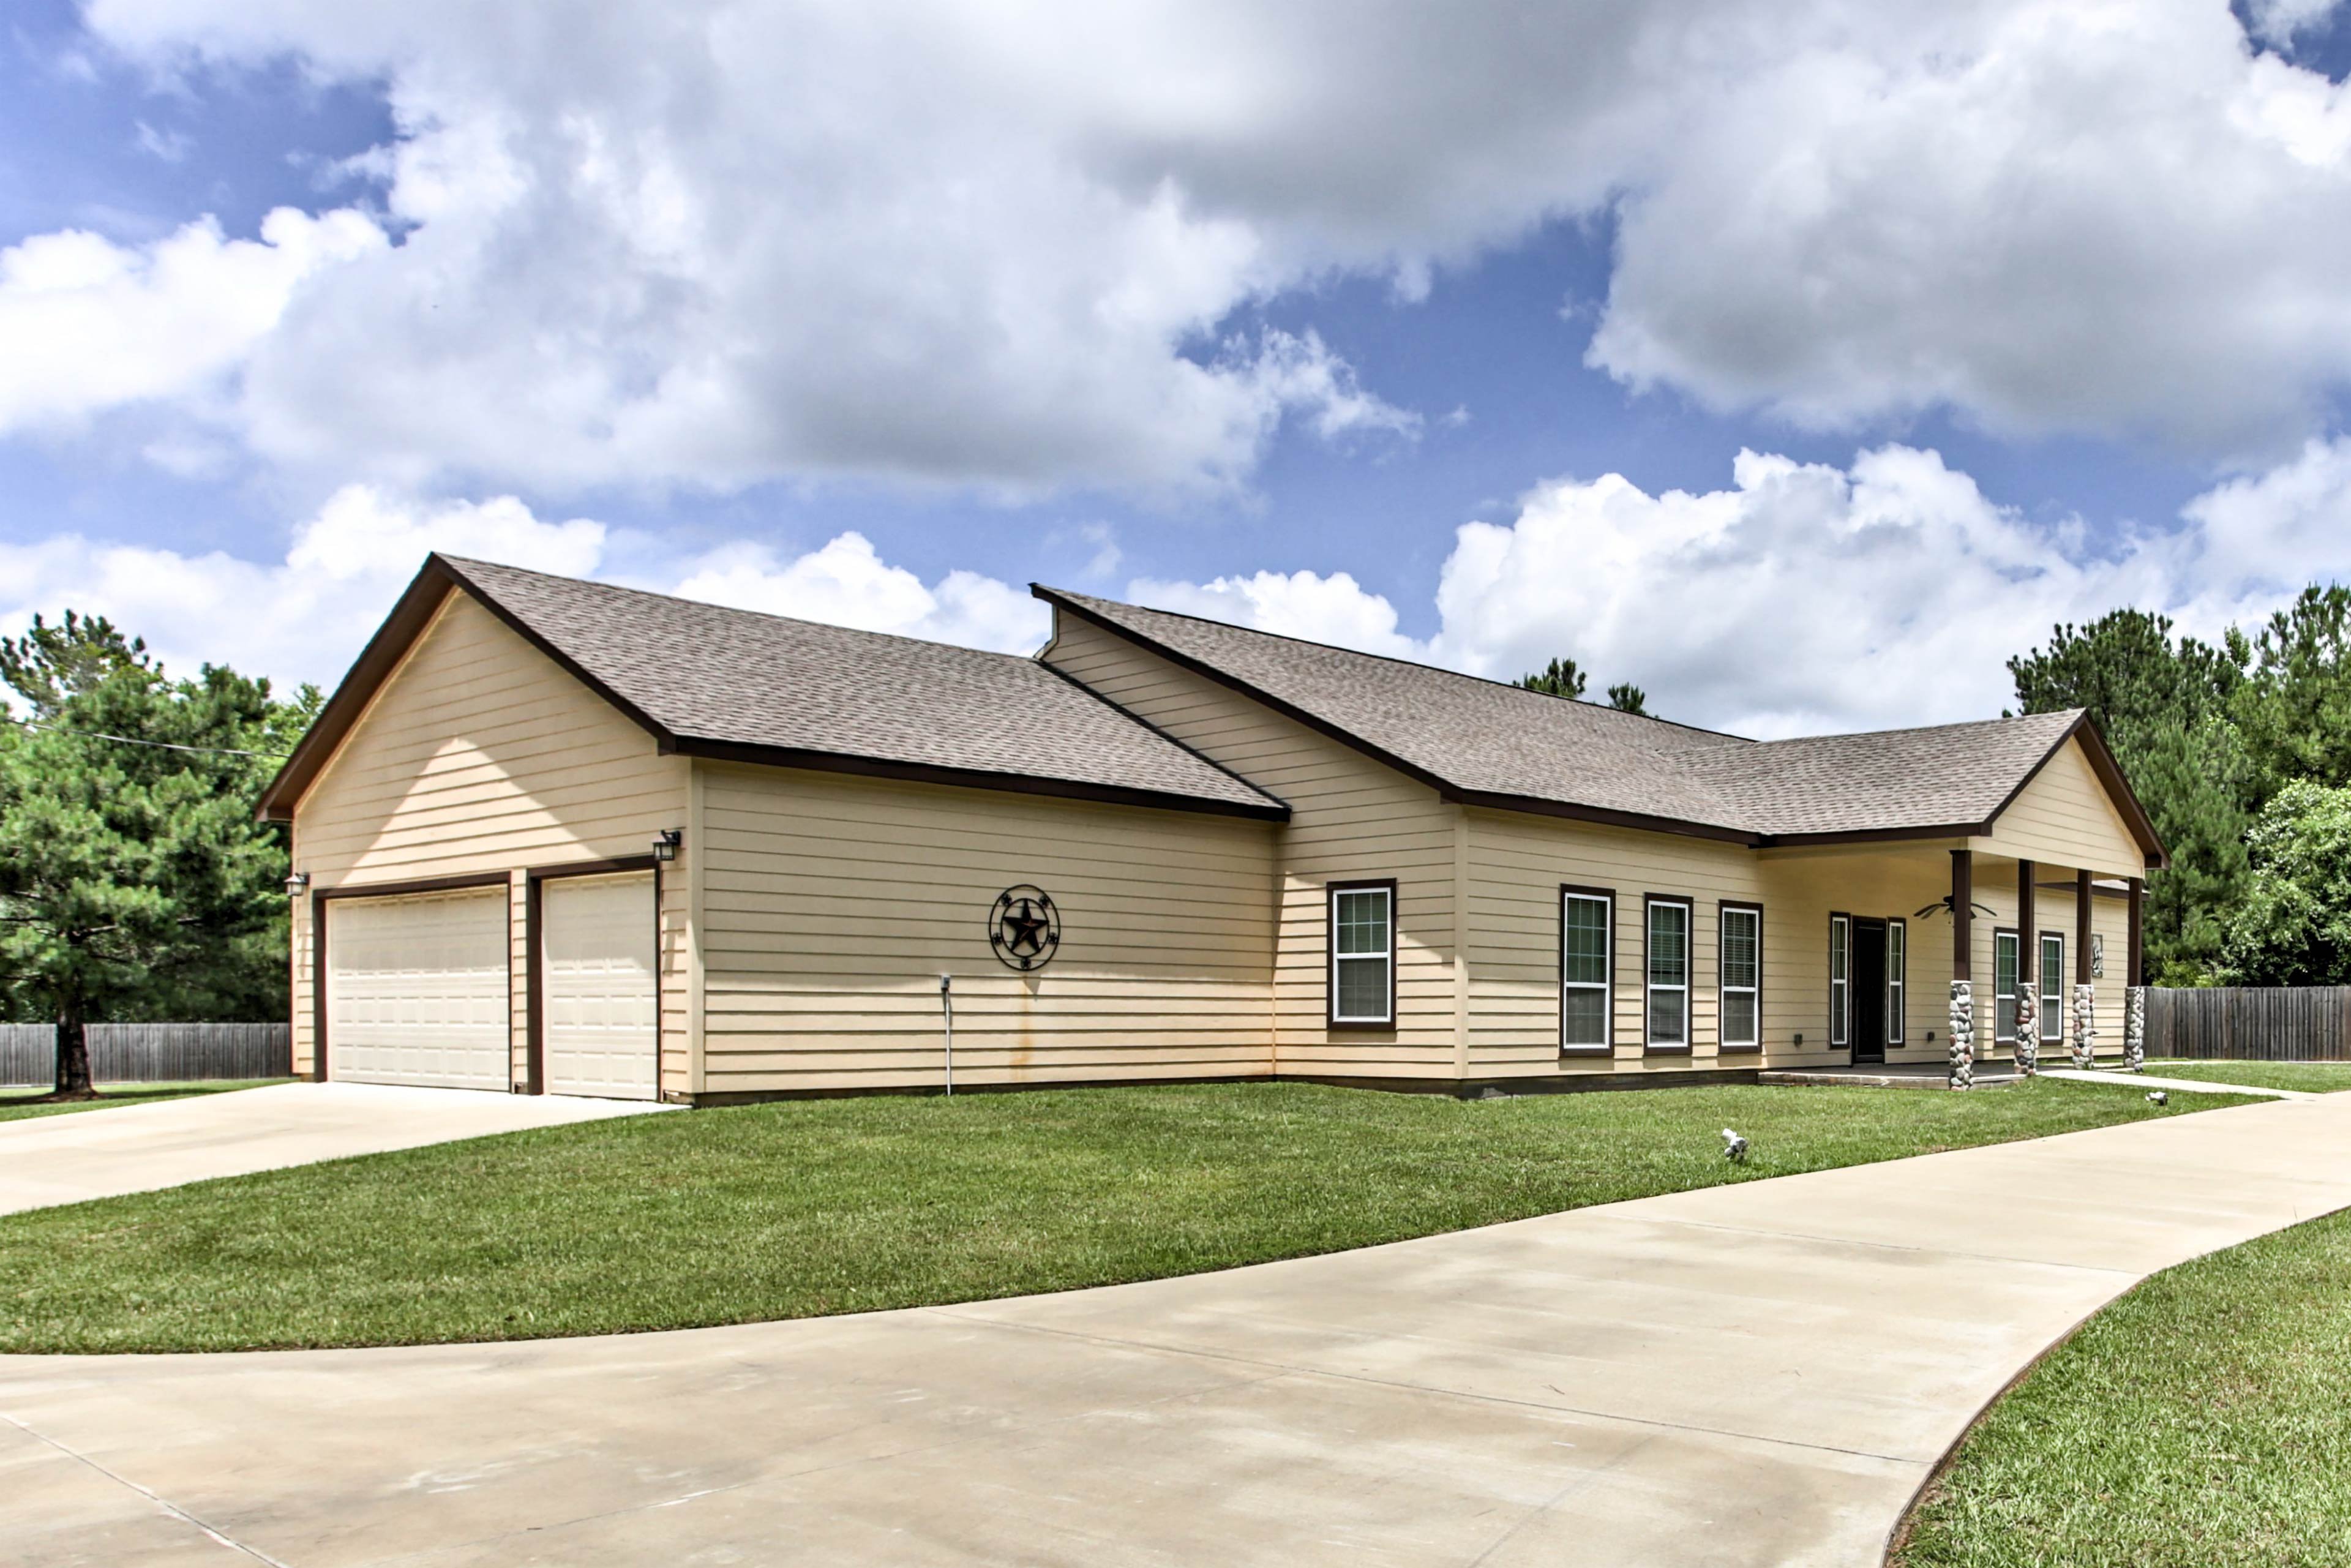 Plan your next Texas retreat to this Marshal vacation rental house!